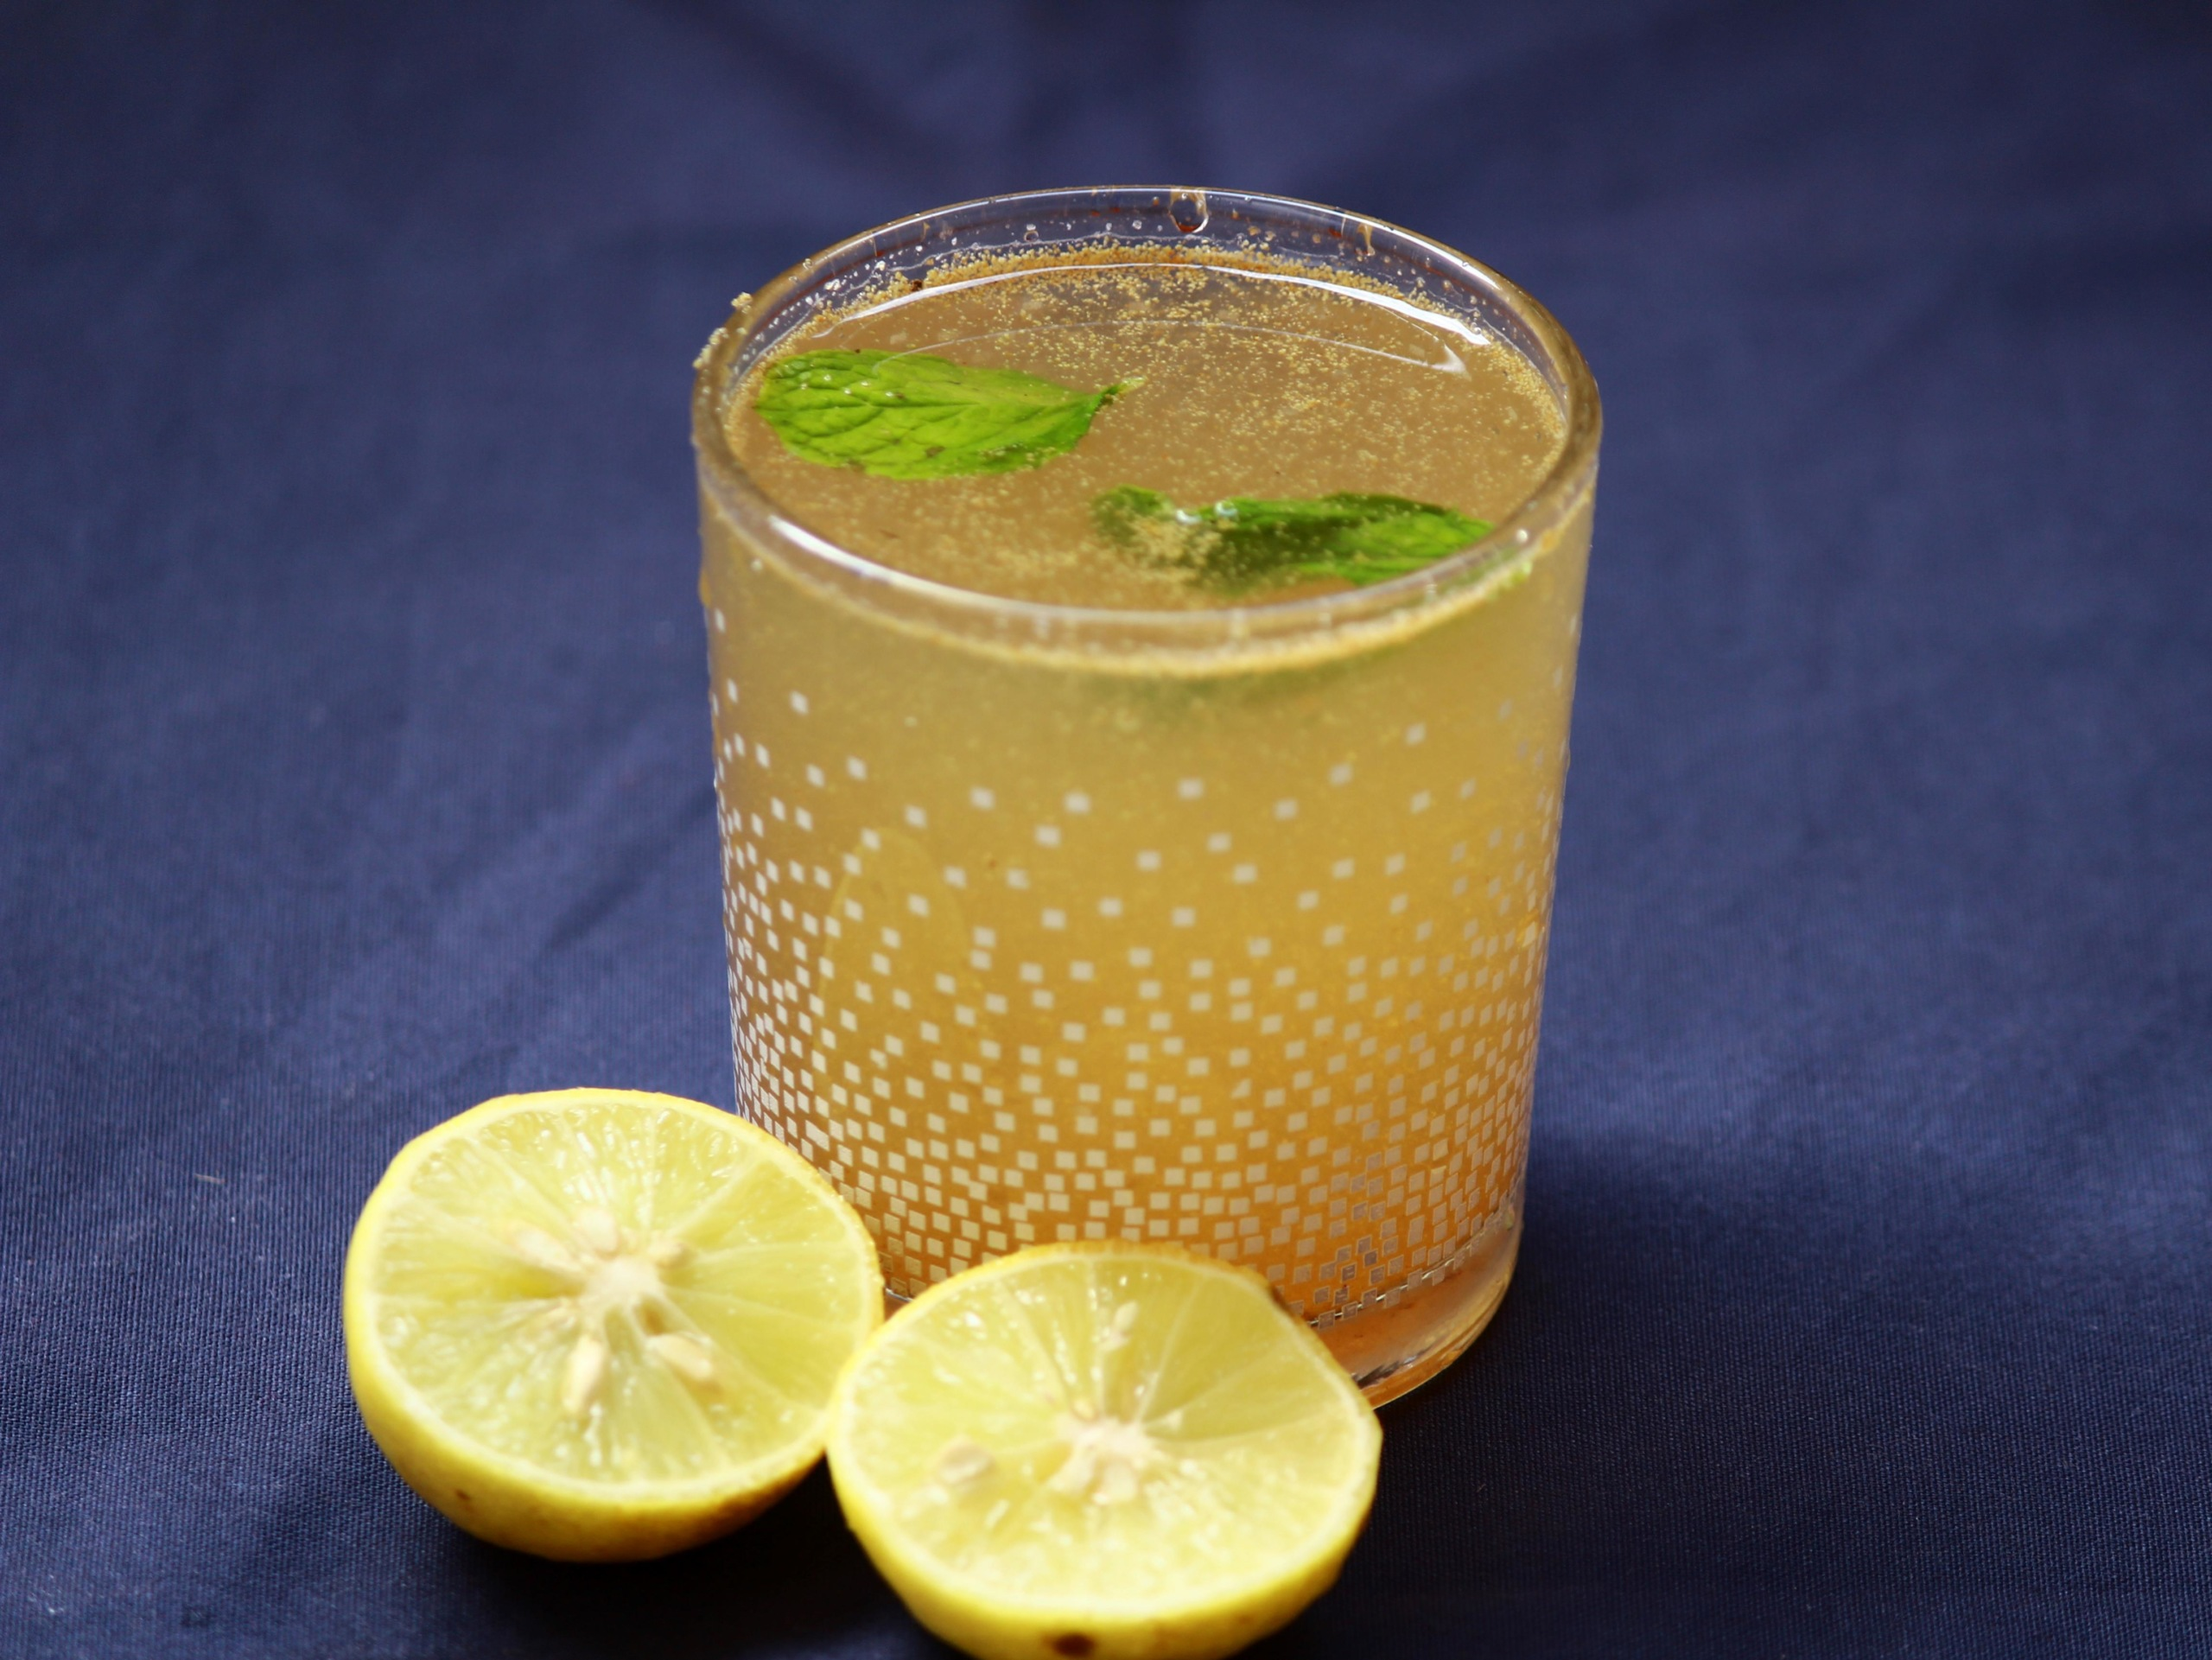 a glass of masala lemonade